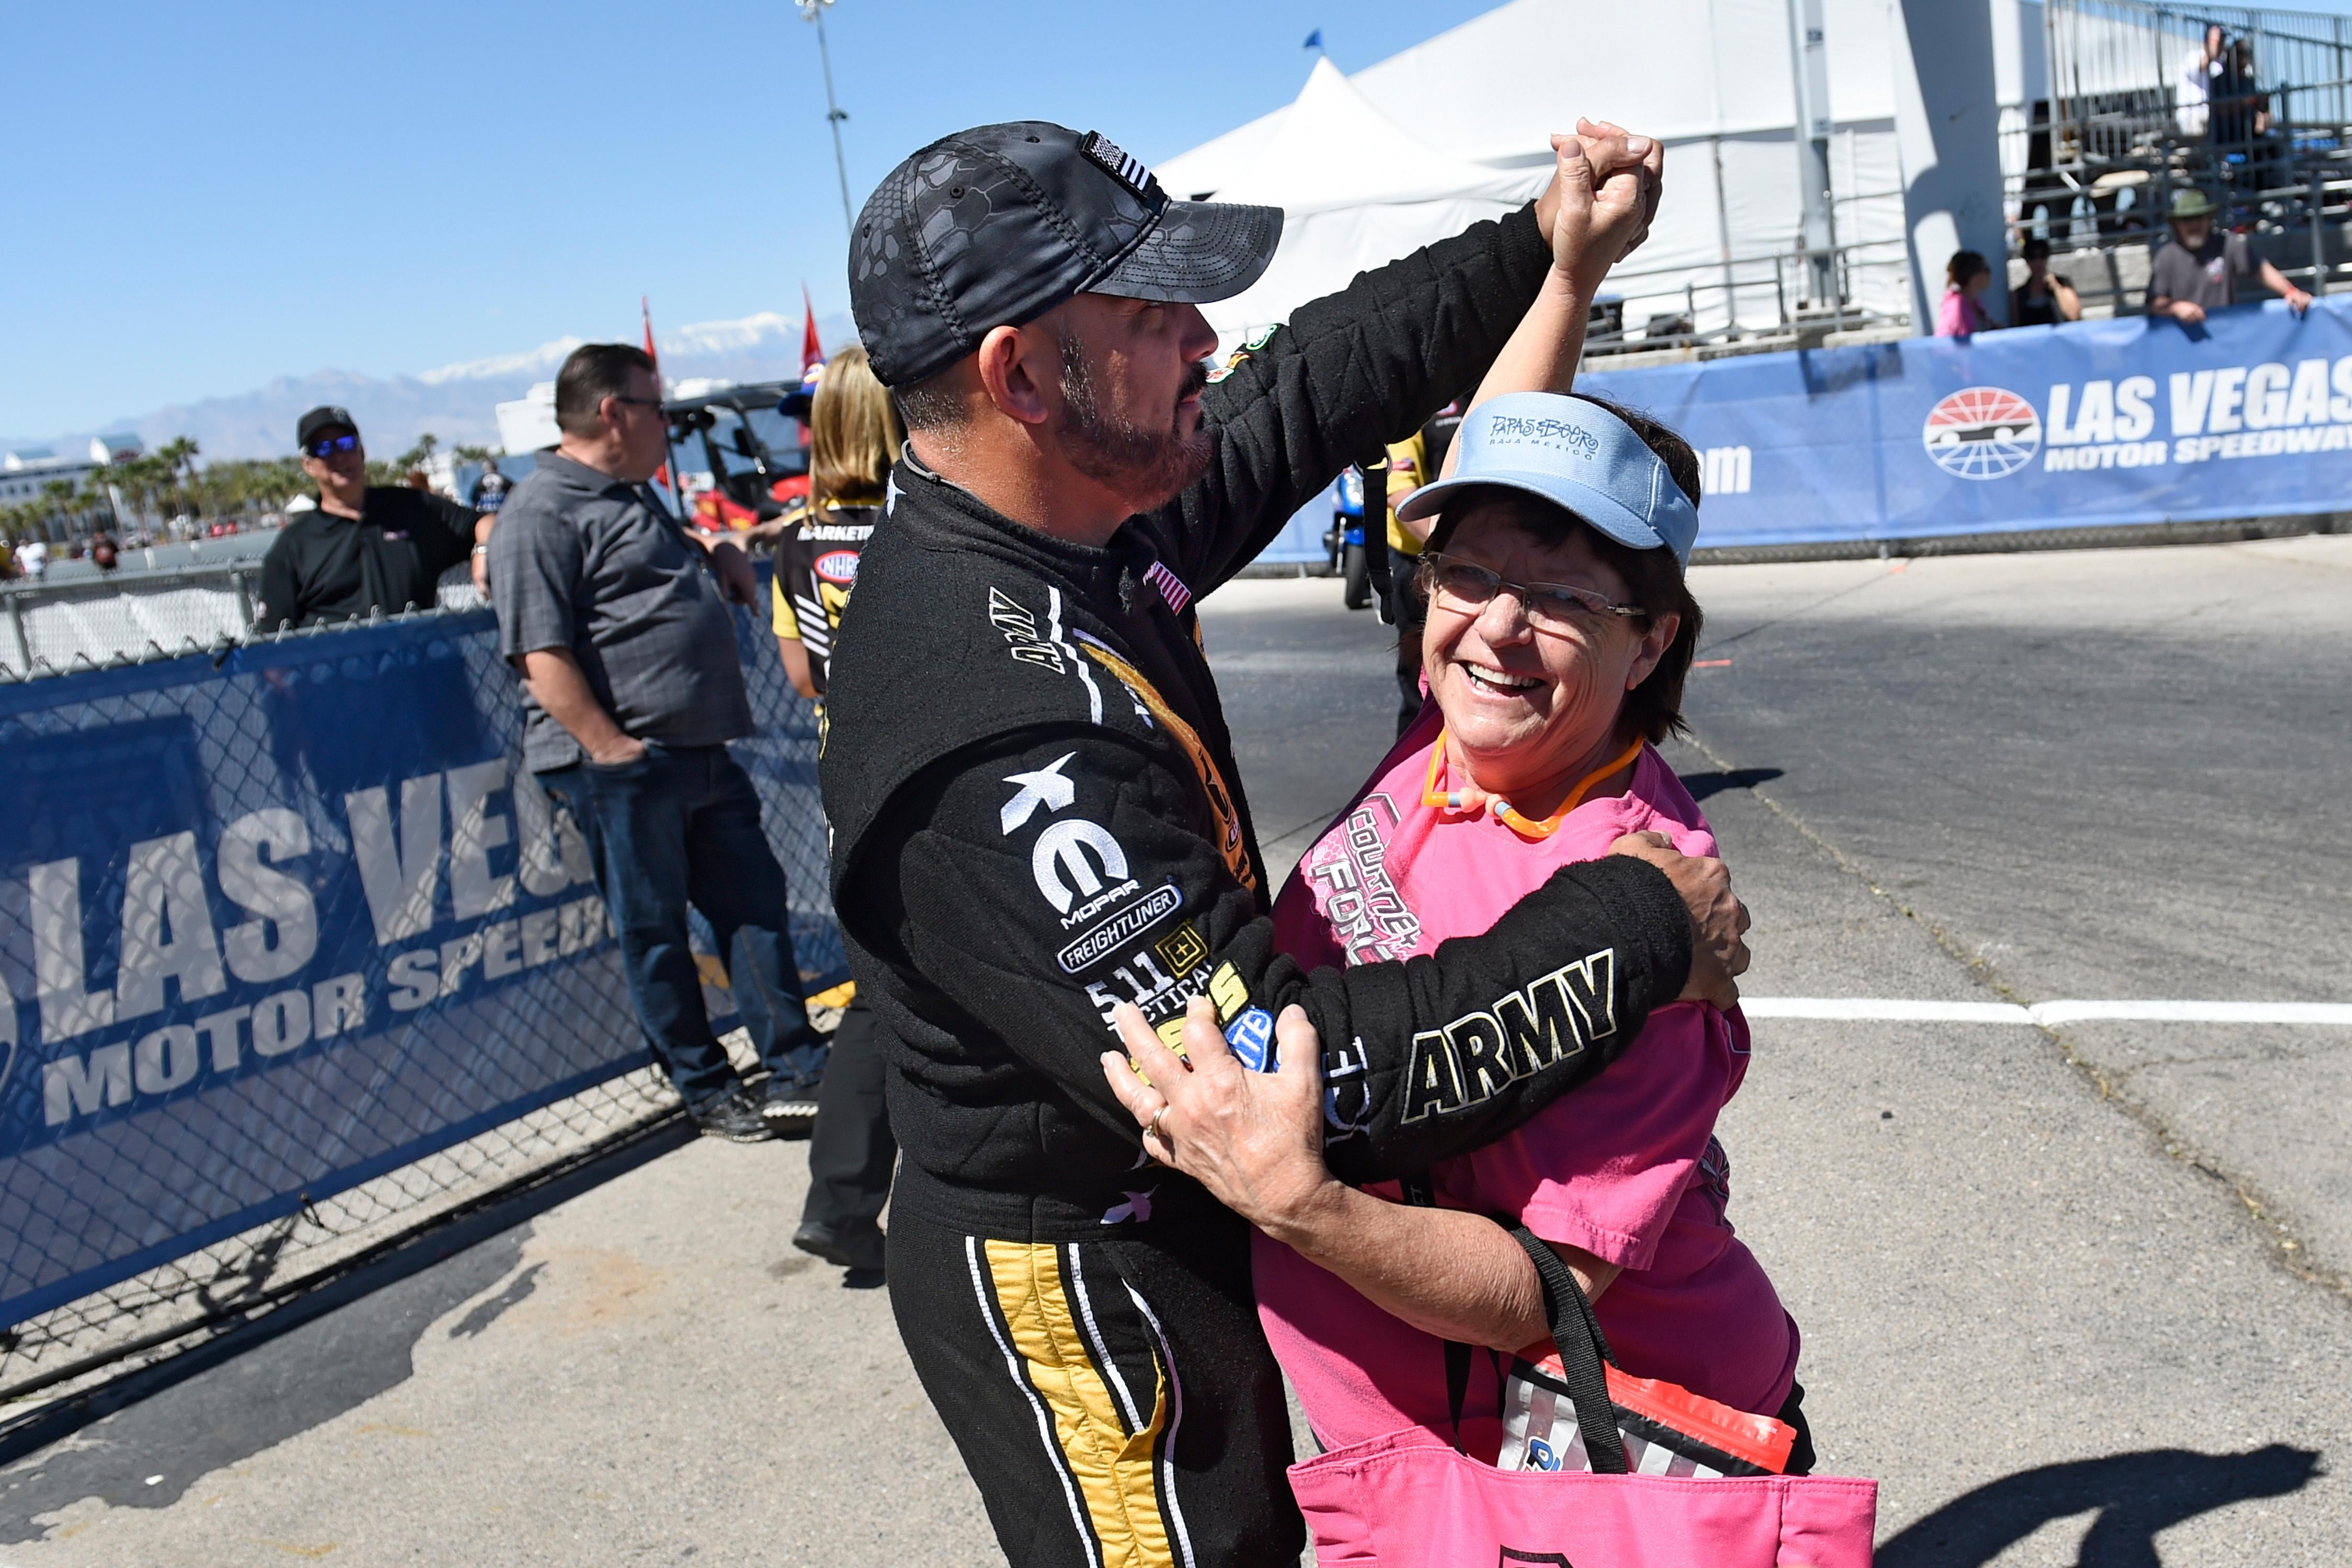 Top fuel driver Tony Schumacher dances with a fan during driver introductions at the NHRA DENSO Spark Plug Nationals at The Strip at the Las Vegas Motor Speedway Sunday, April 2, 2017. (Sam Morris/Las Vegas News Bureau)